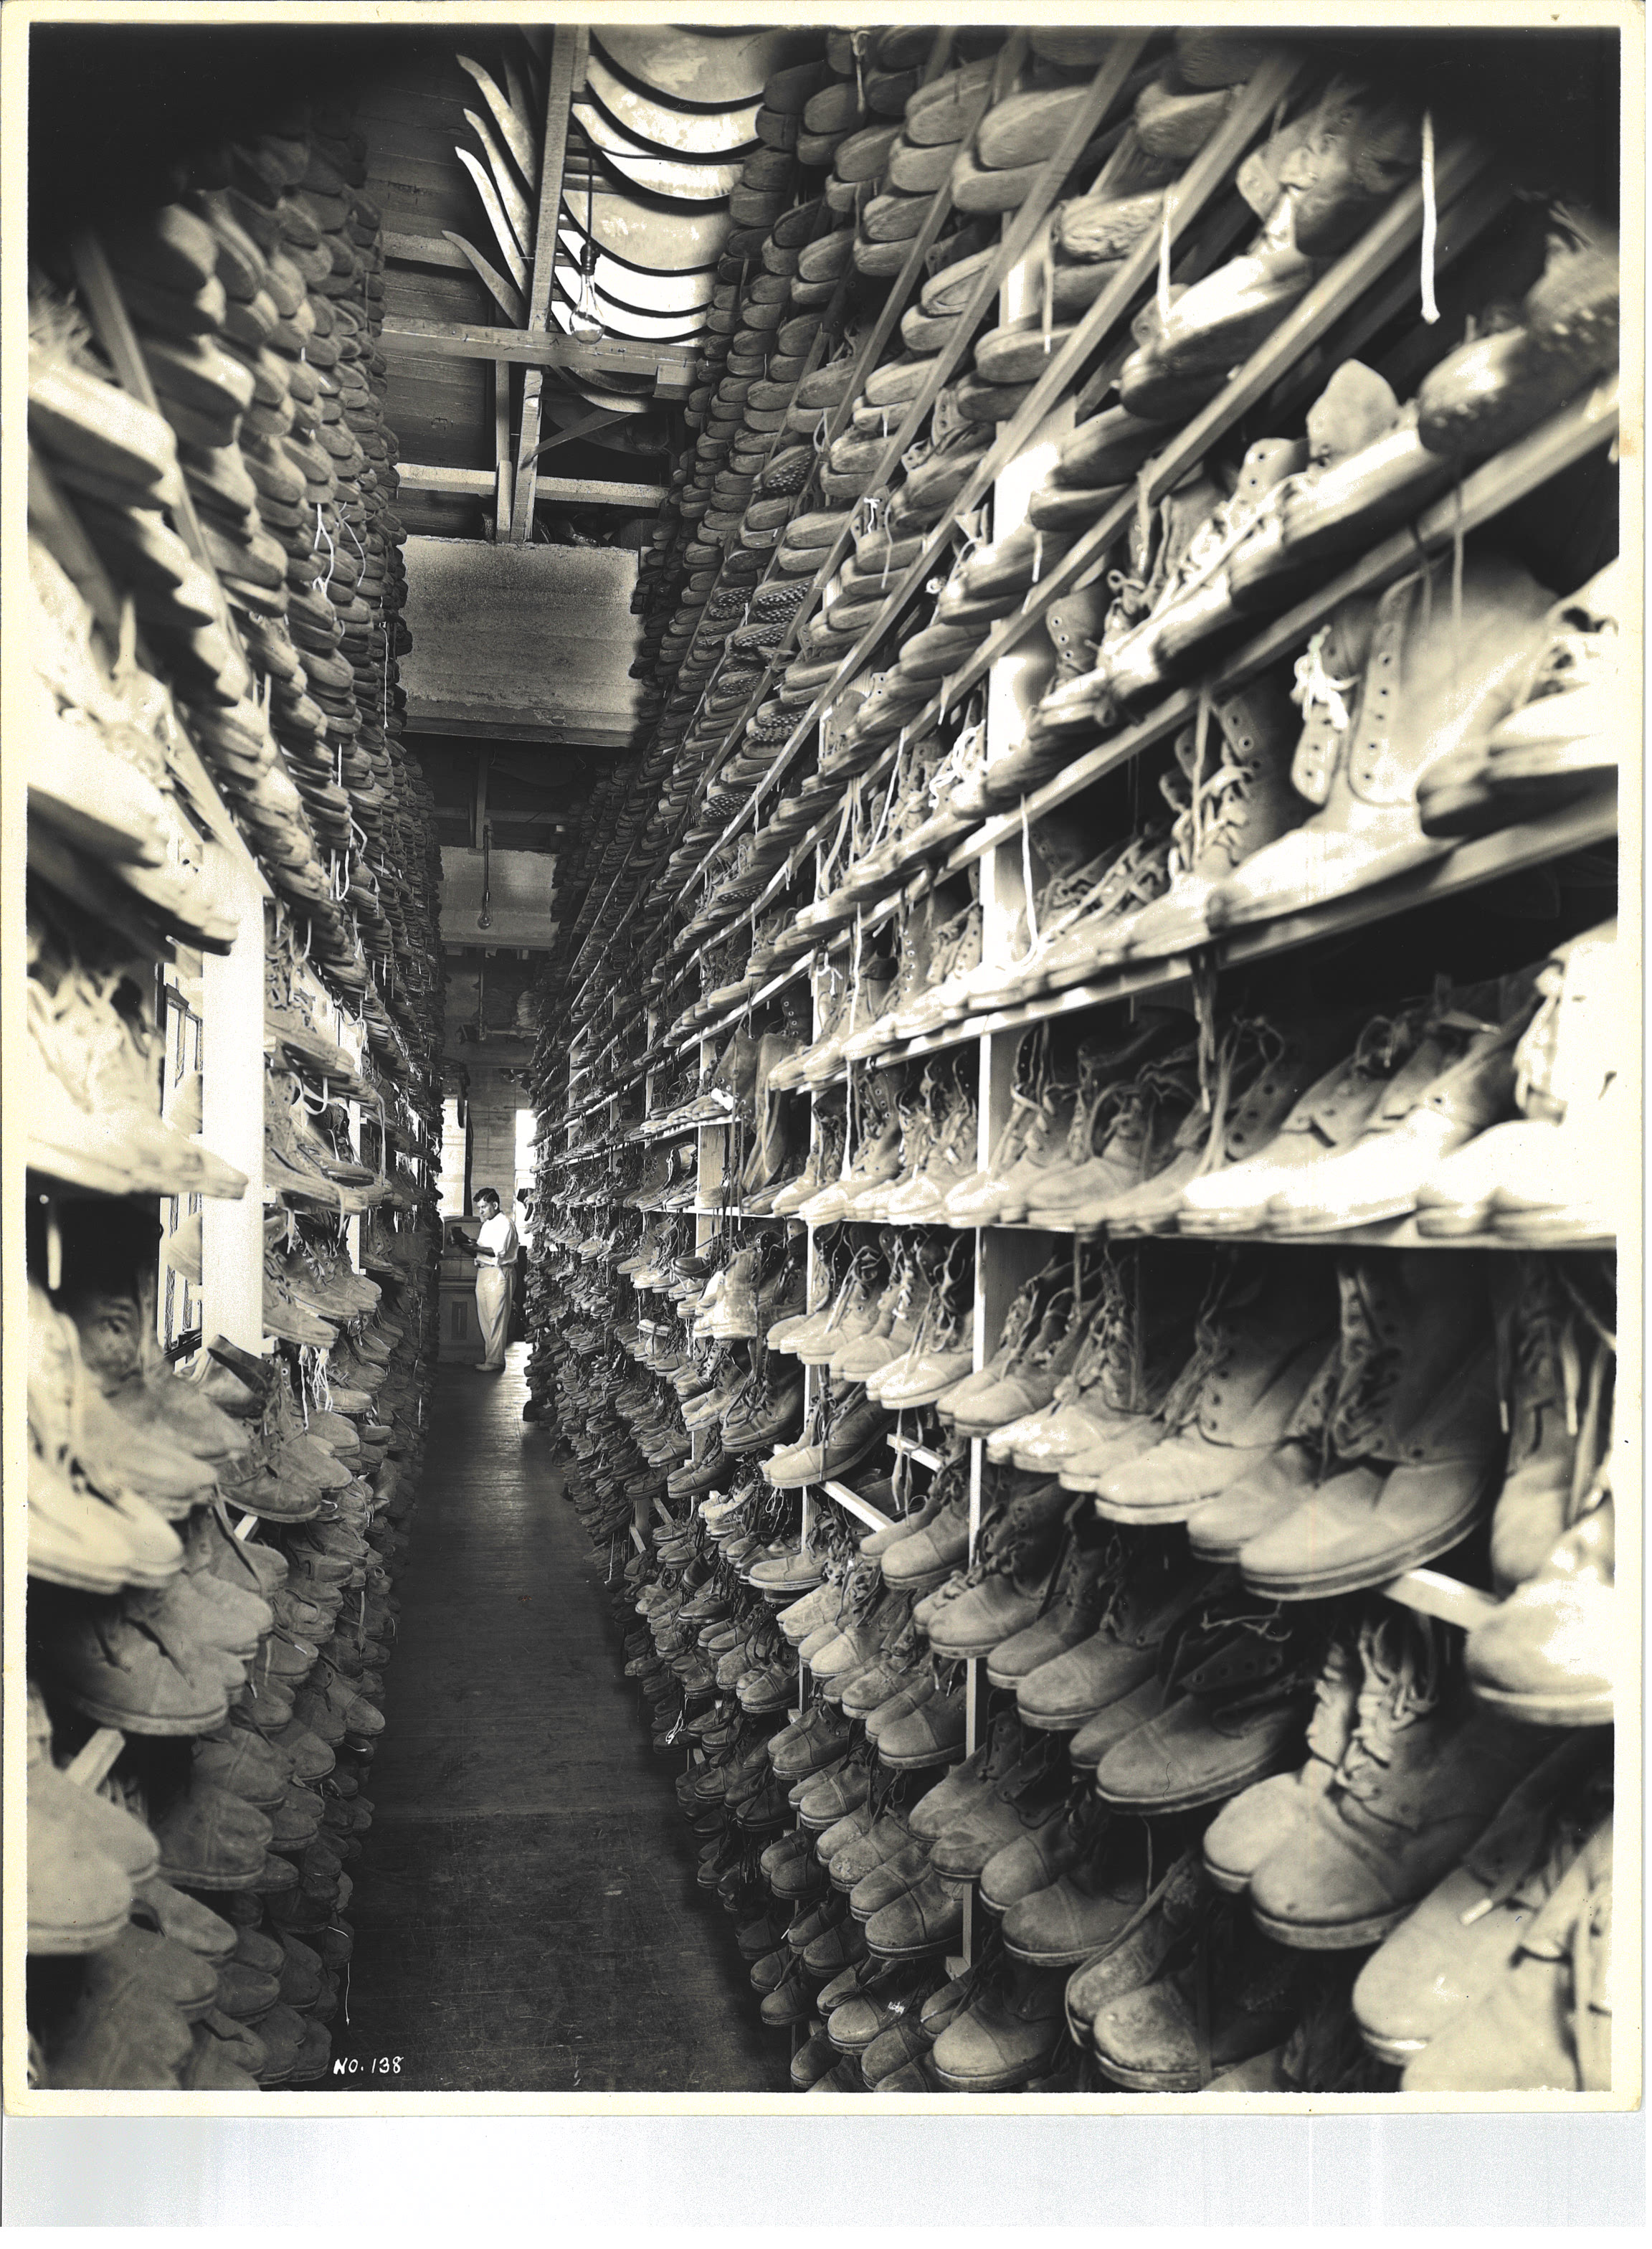 Employee examining boots at Western Costume Company, Bronson Building, Los Angeles, 1935